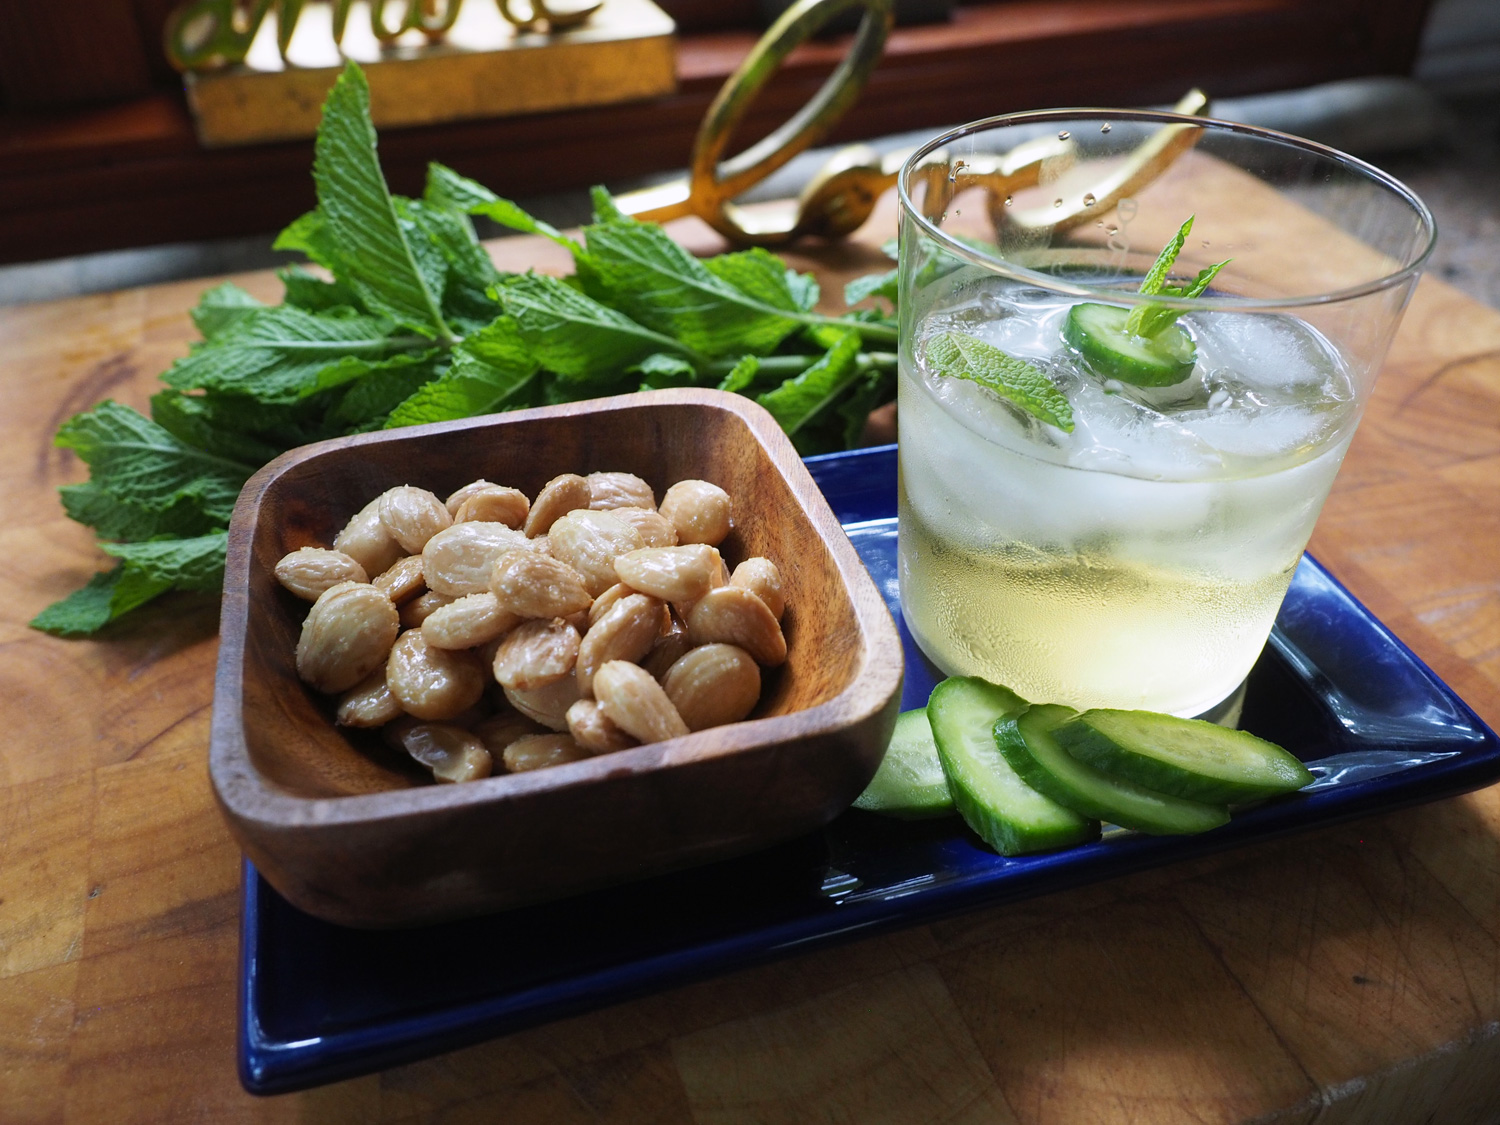 Served with crisp cucumber slices and crunchy, salty marcona almonds… A perfect cooling cocktail that suits to a T.